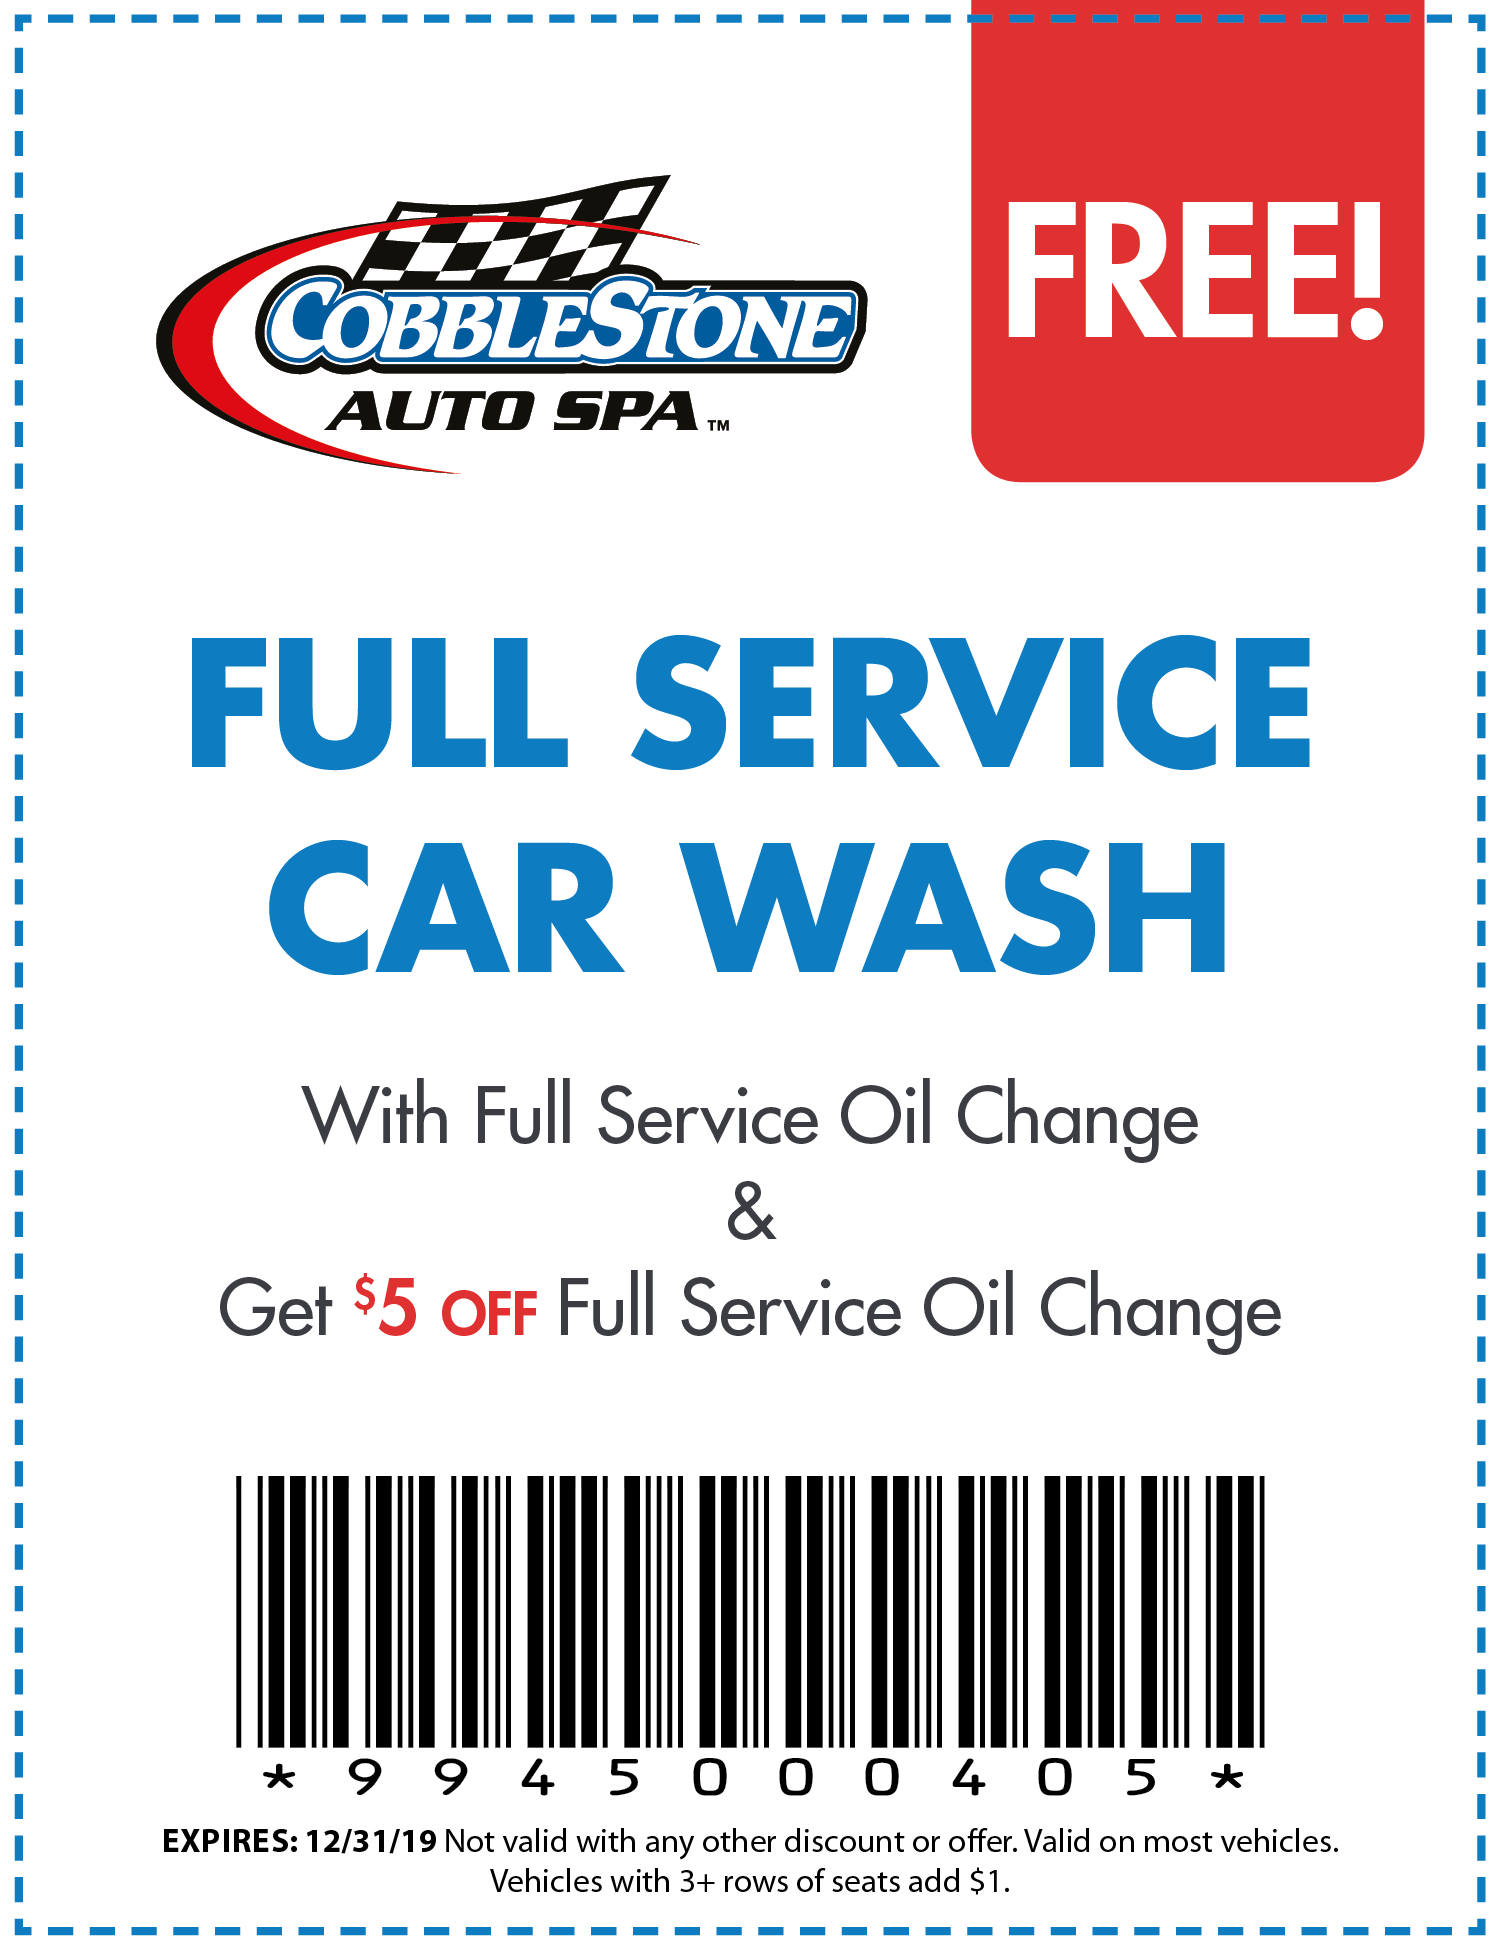 Cobblestone Car Wash Coupons